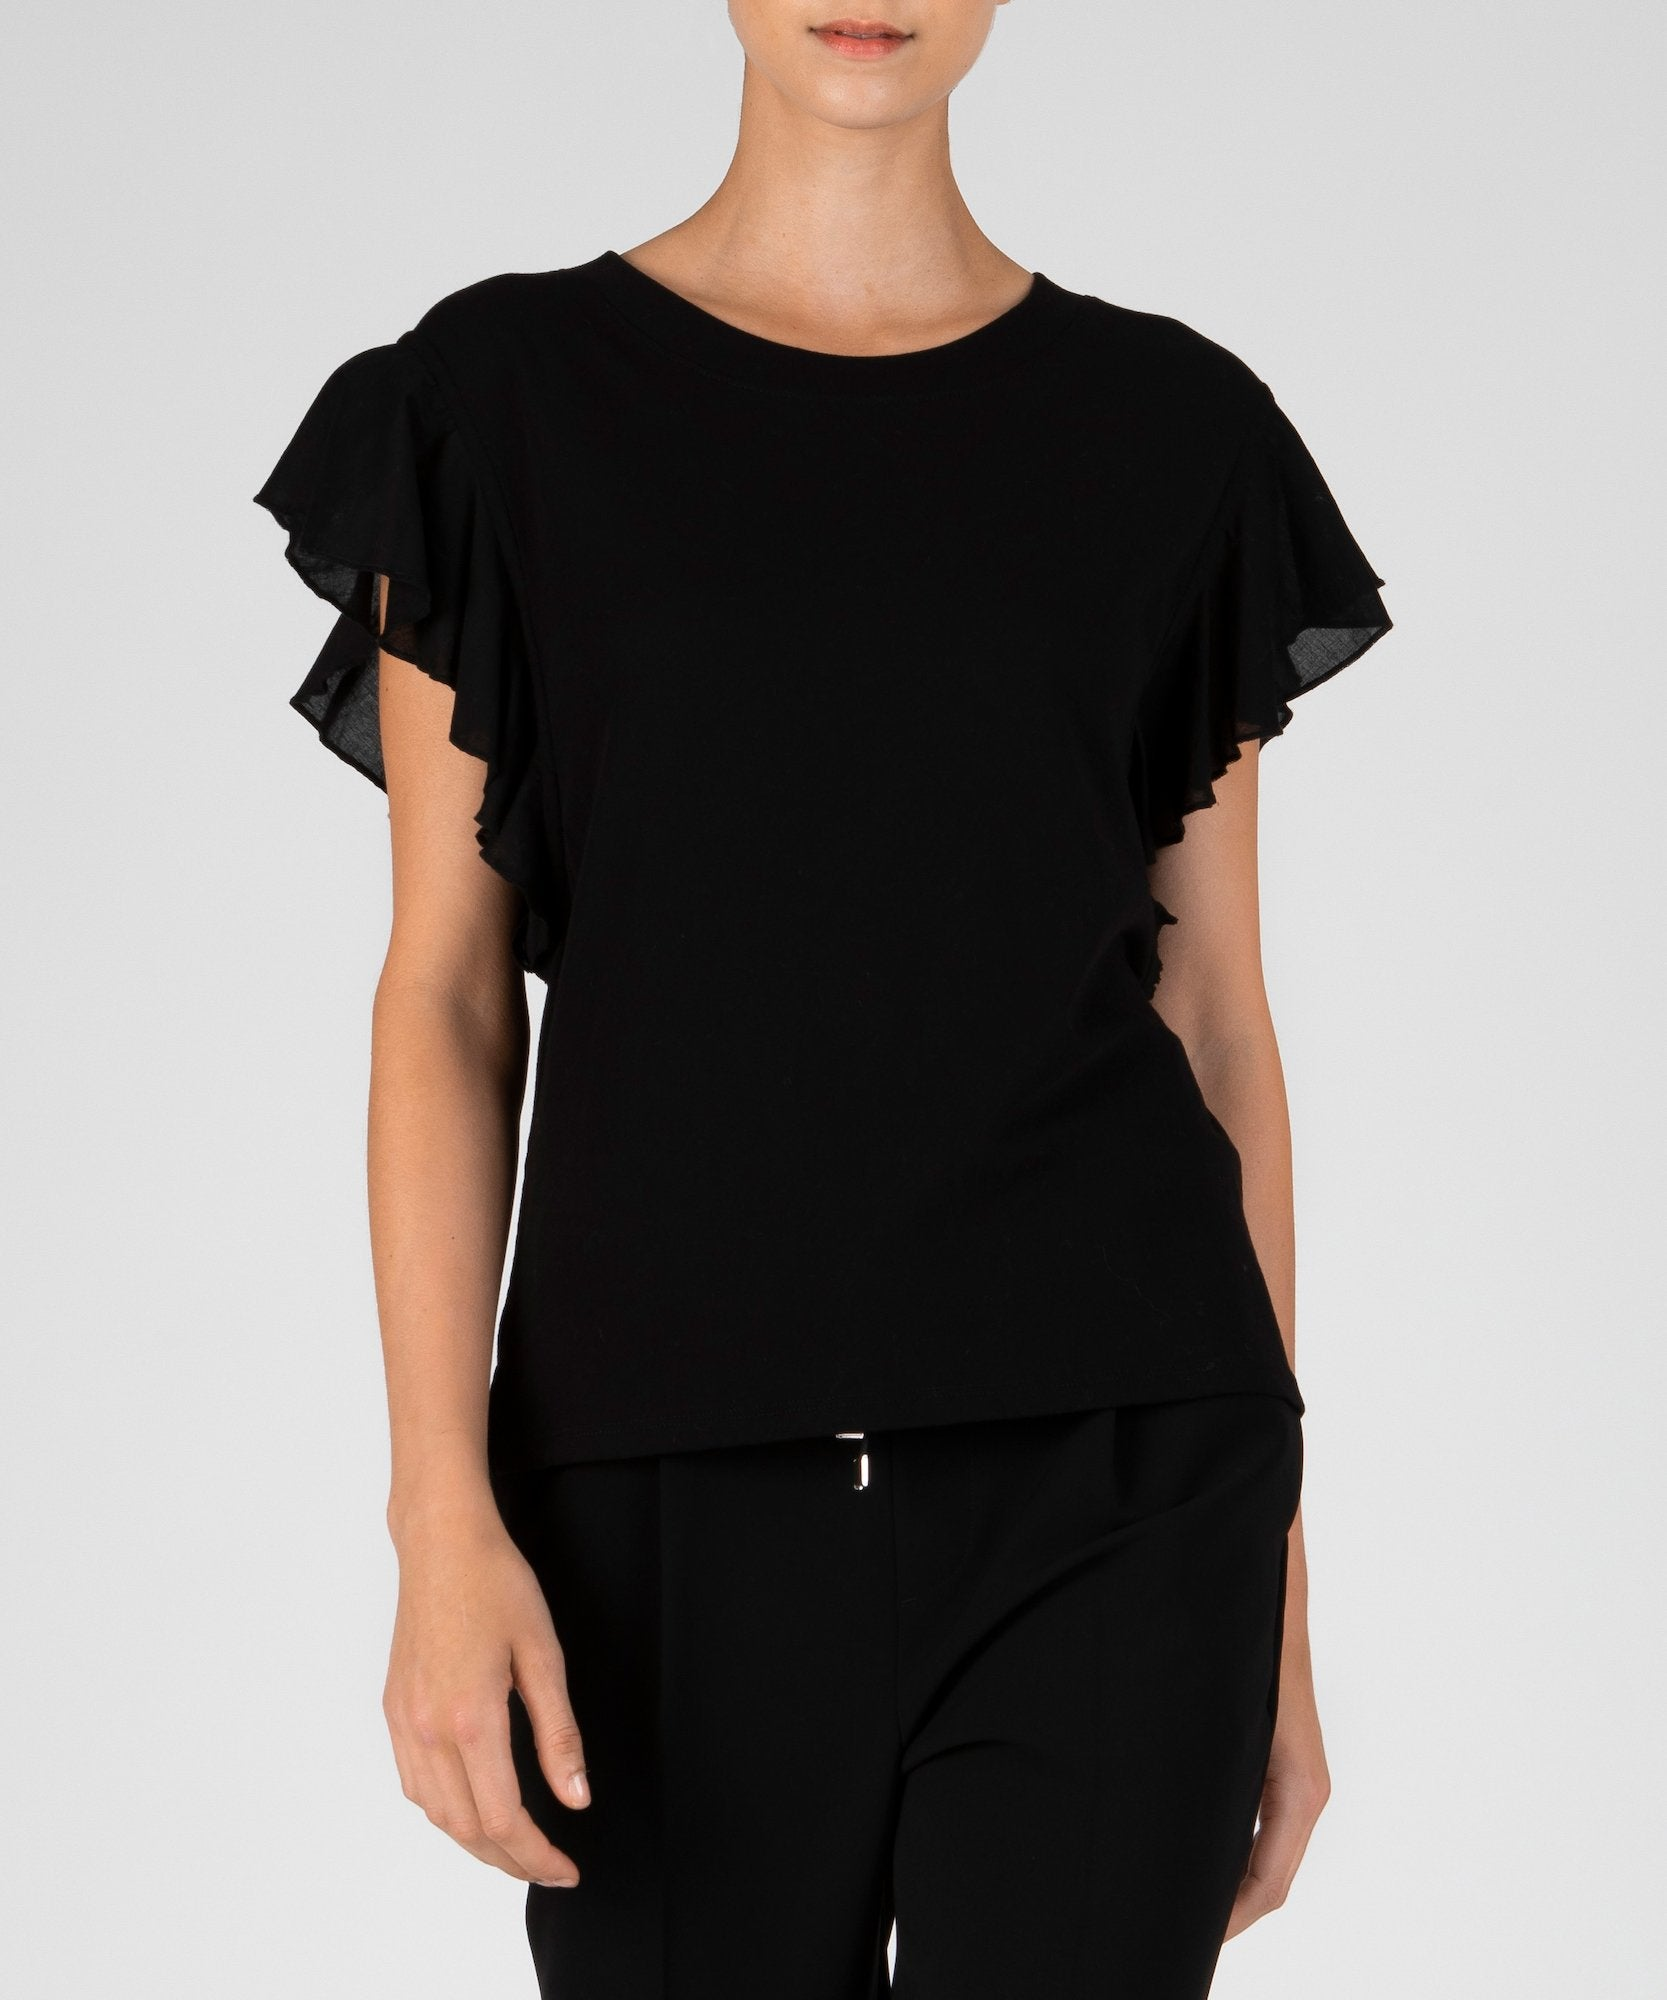 Black Mixed Media Fluted Sleeve Tee - Women's Cotton Top by ATM Anthony Thomas Melillo